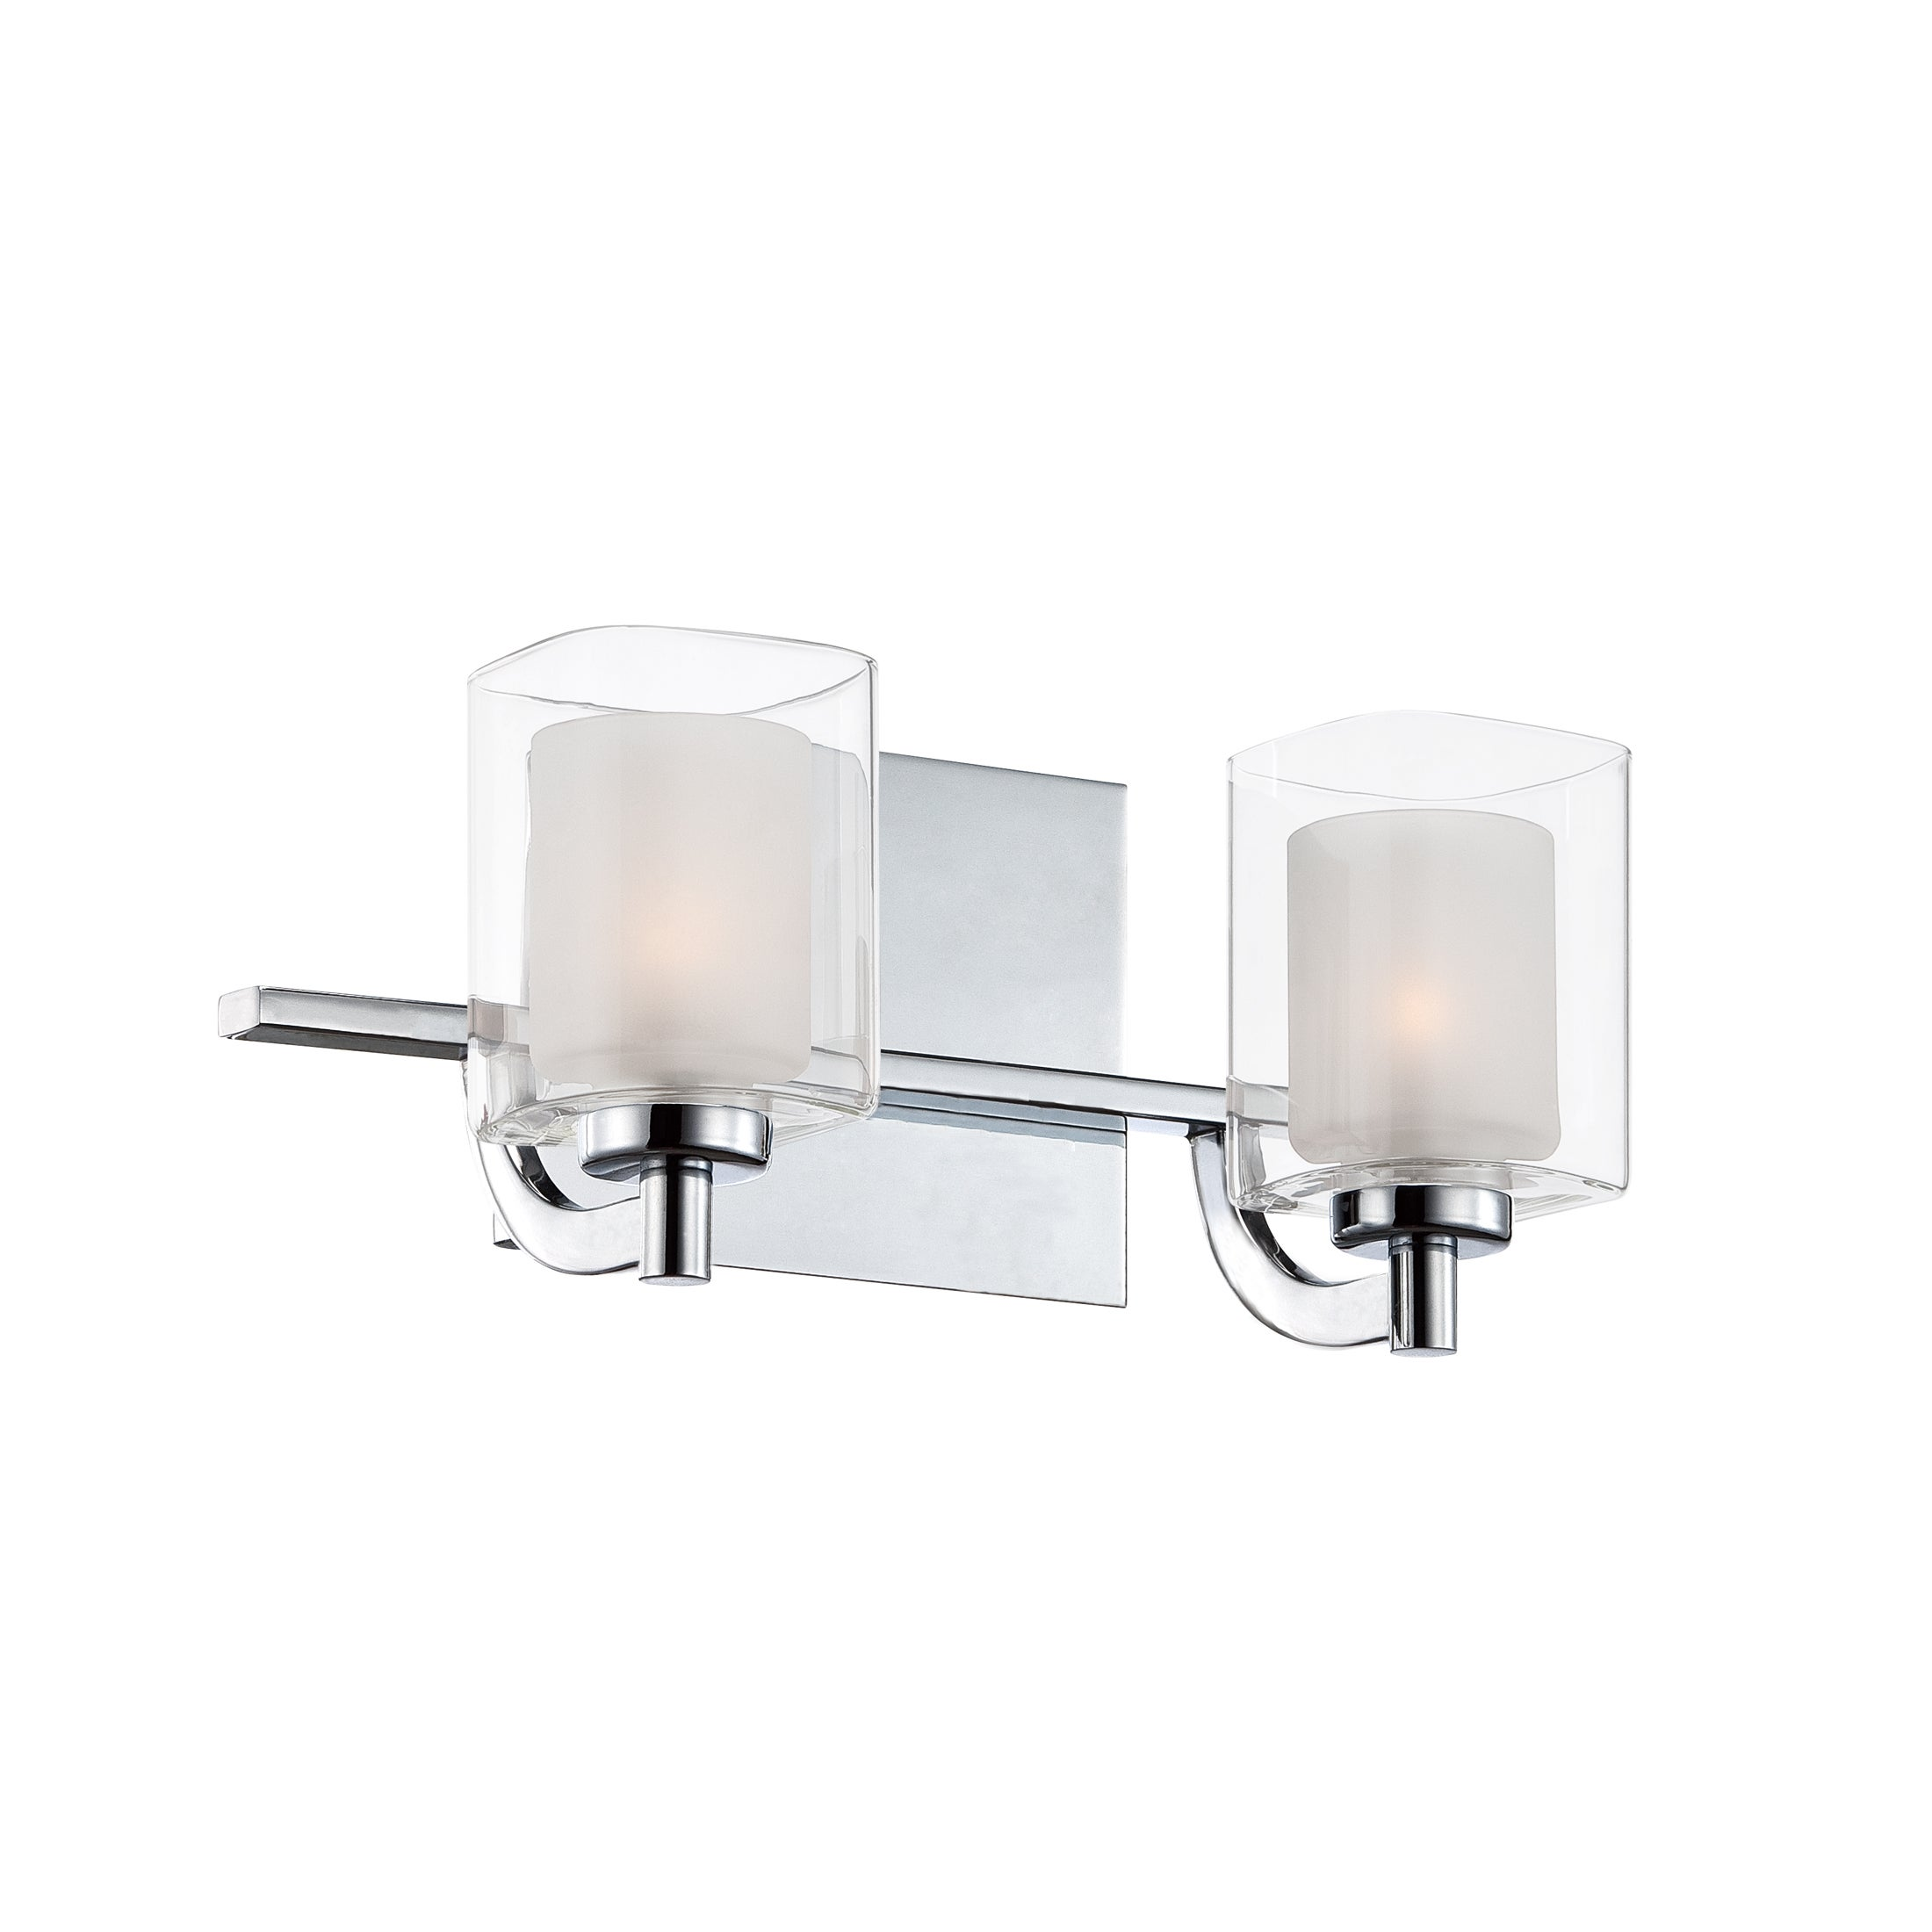 Quoizel 'Kolt' Two-light Bath Fixture